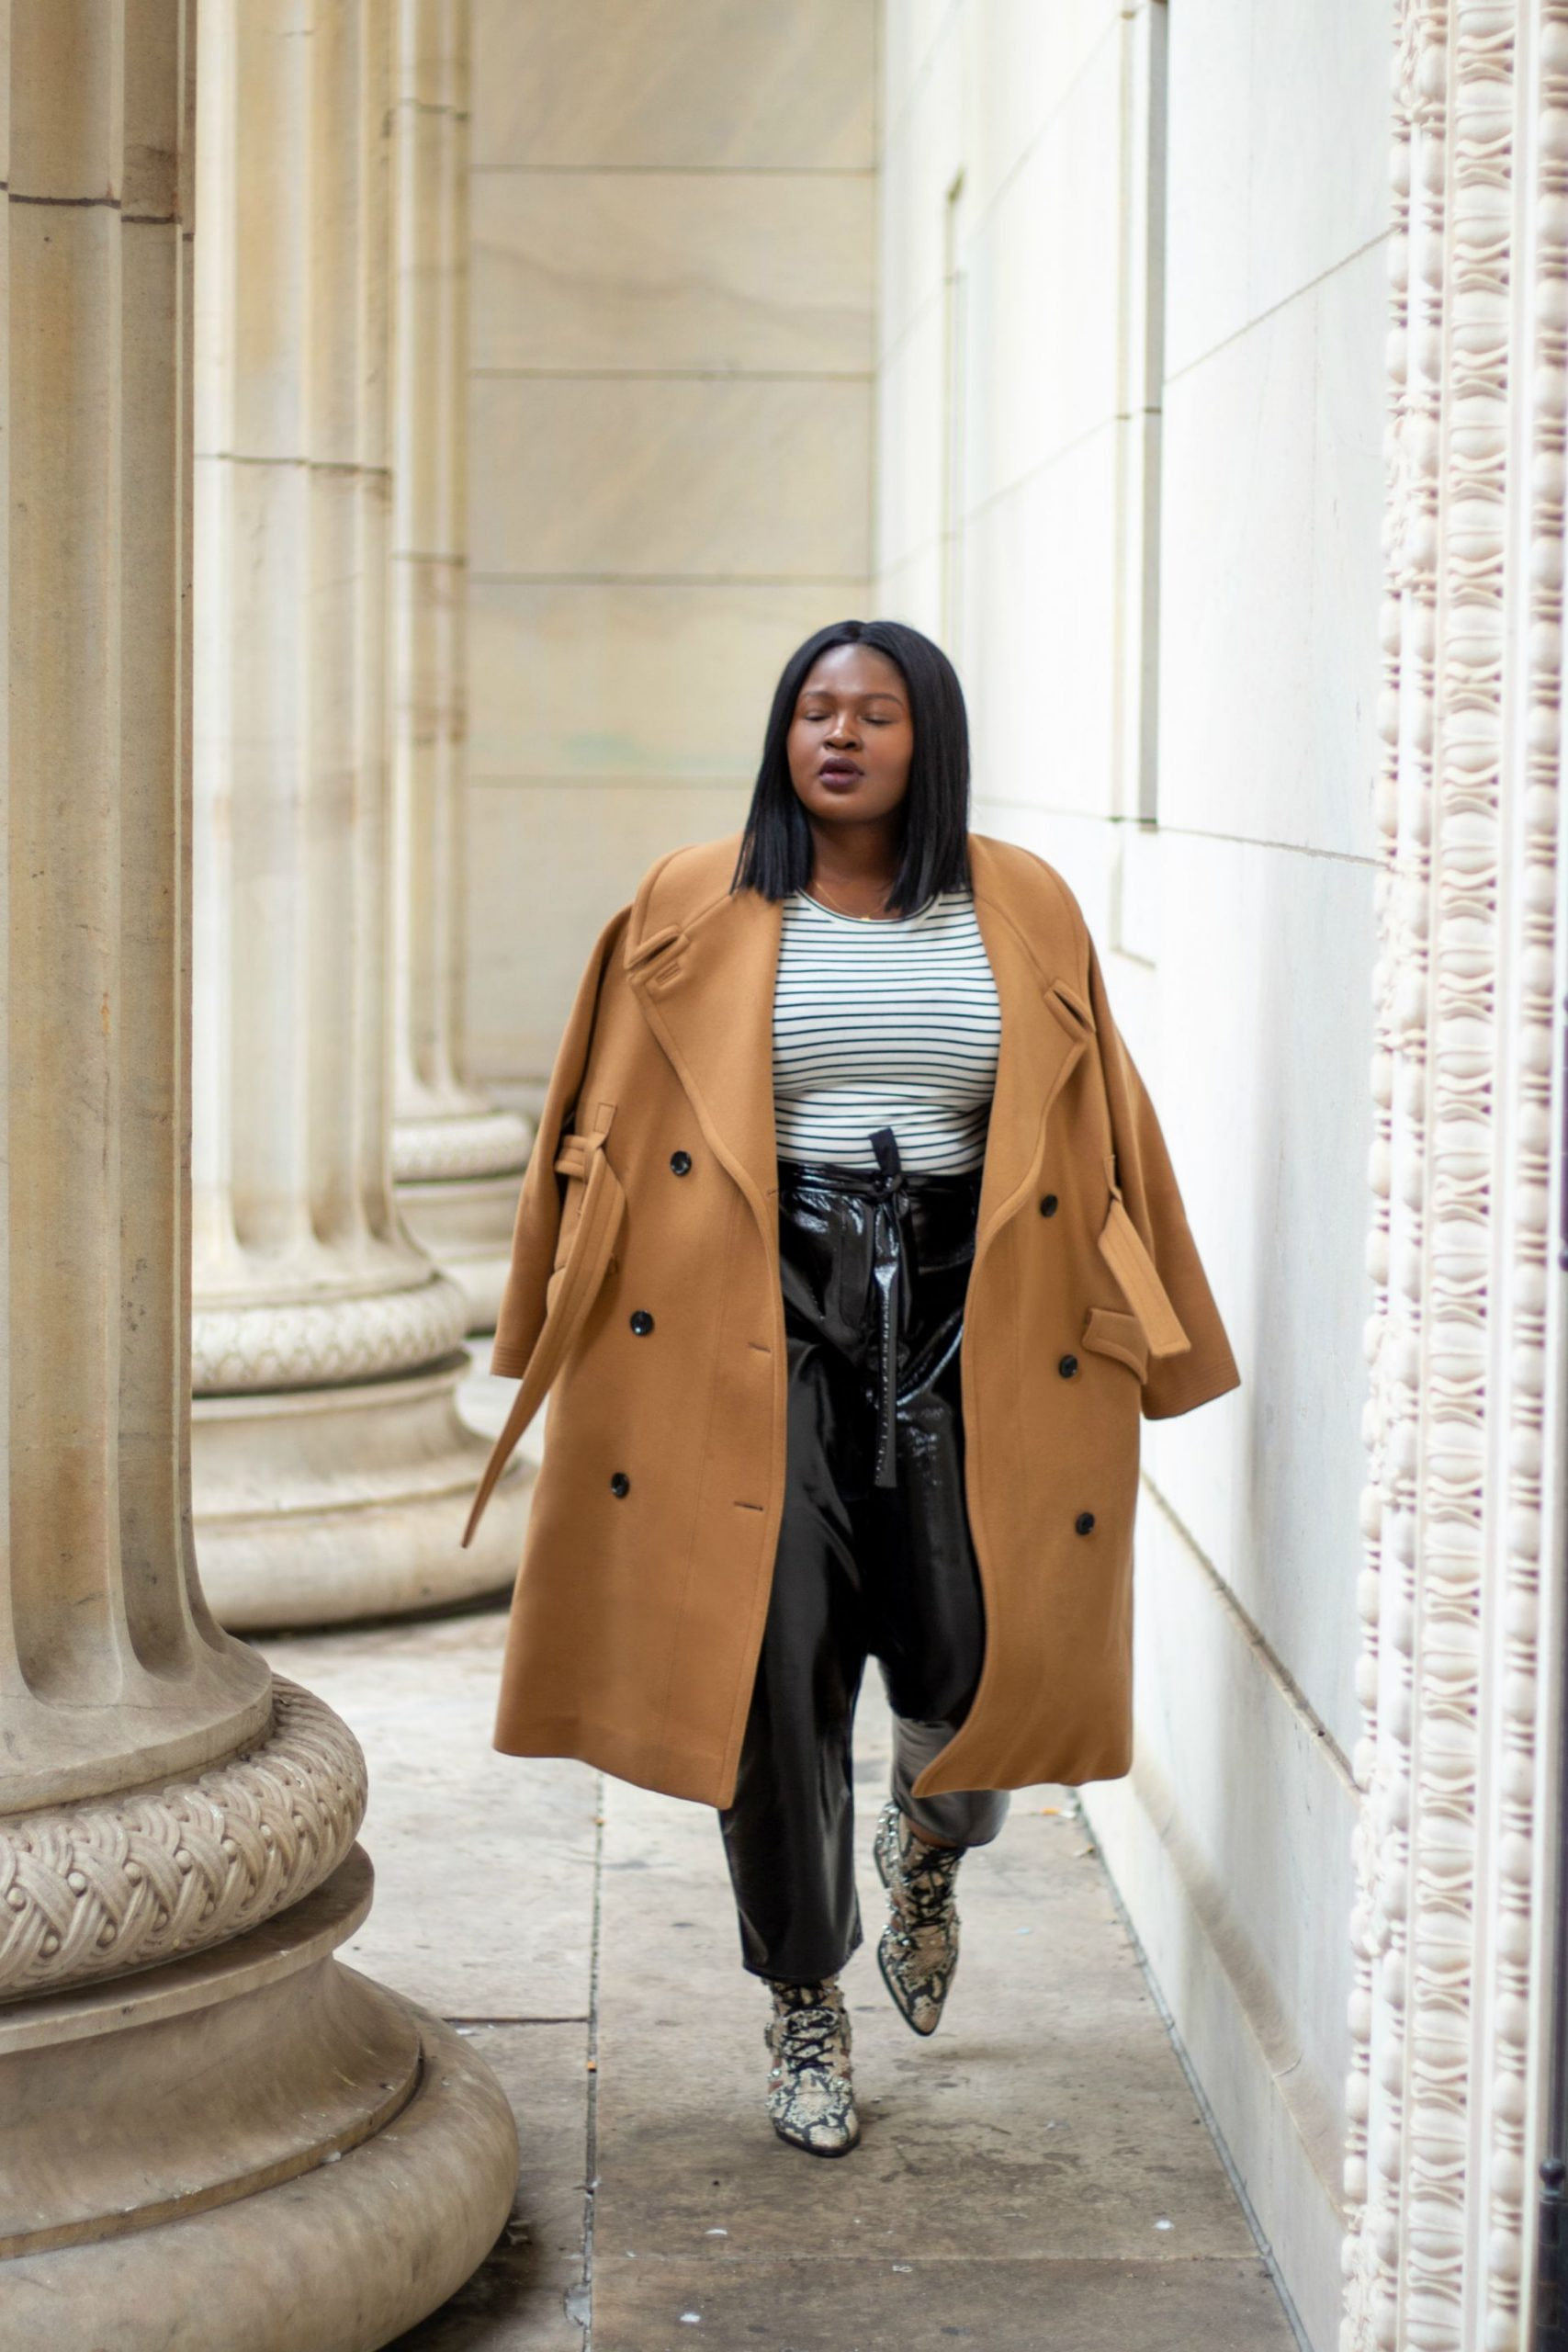 top coats black friday sale picks from supplechic a fashion and lifestyle blog based in Baltimore